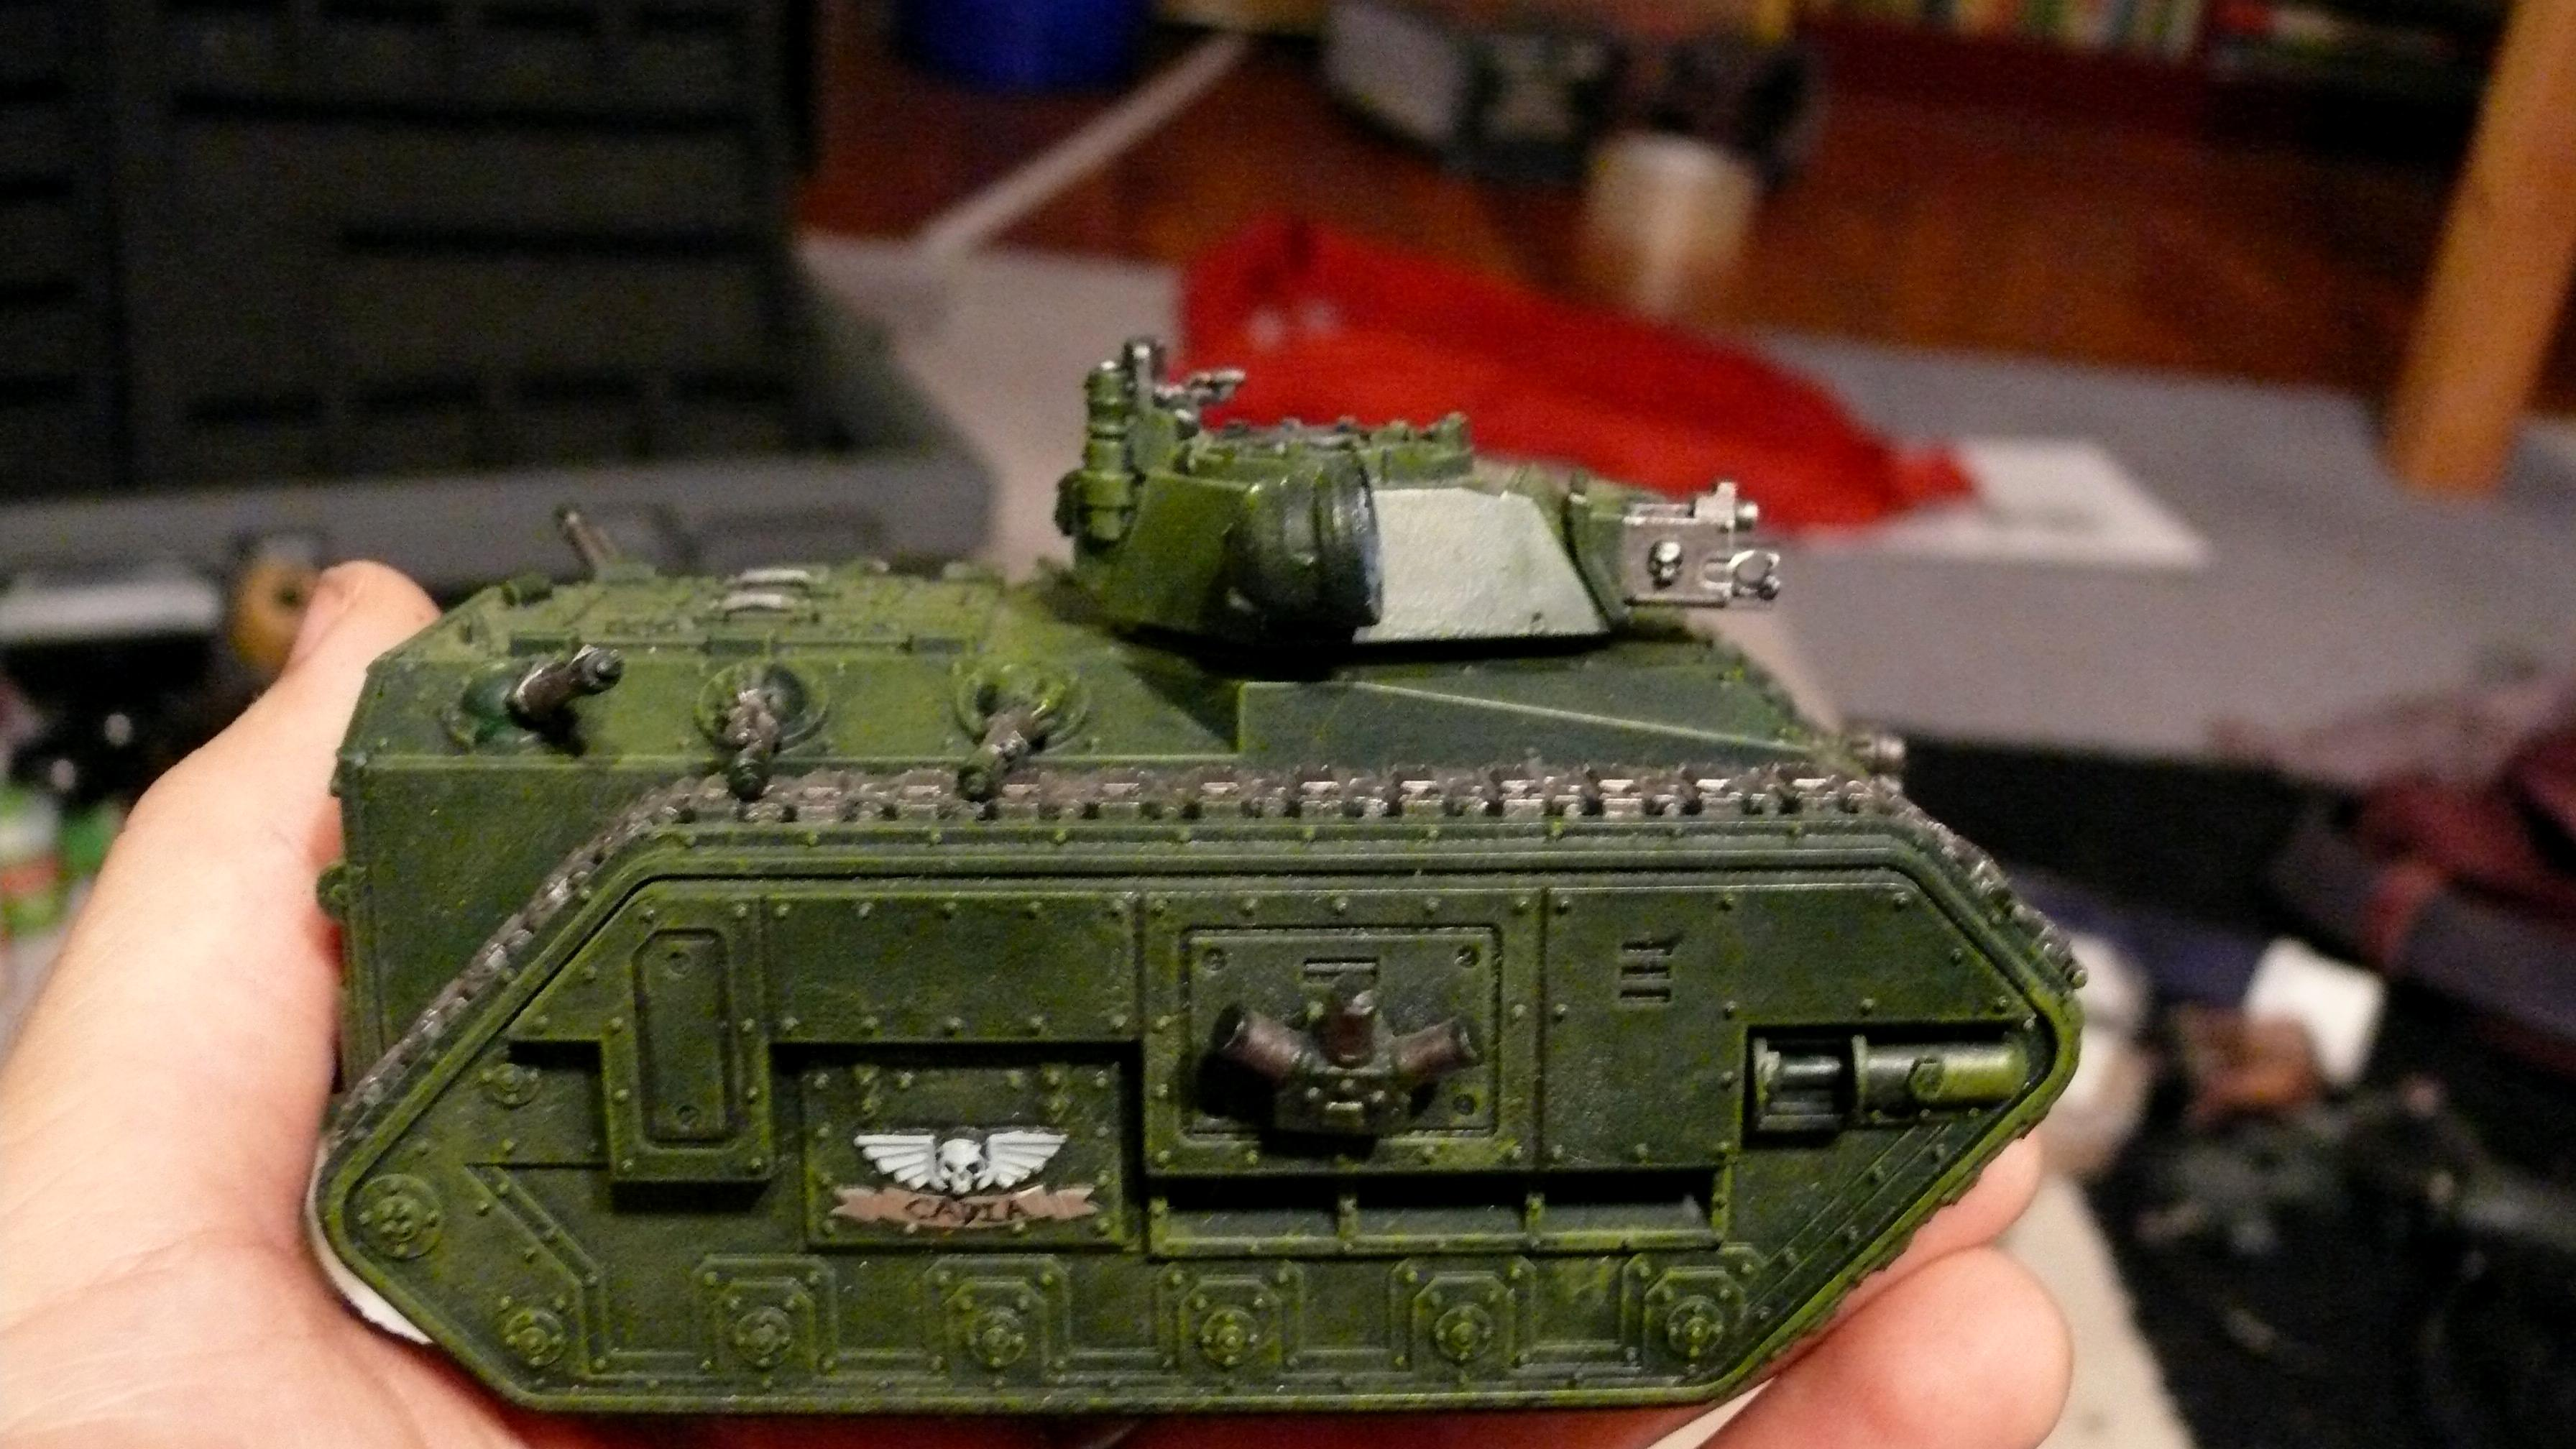 Astra Militarum, Chimera, Imperial Guard, Warhammer 40,000